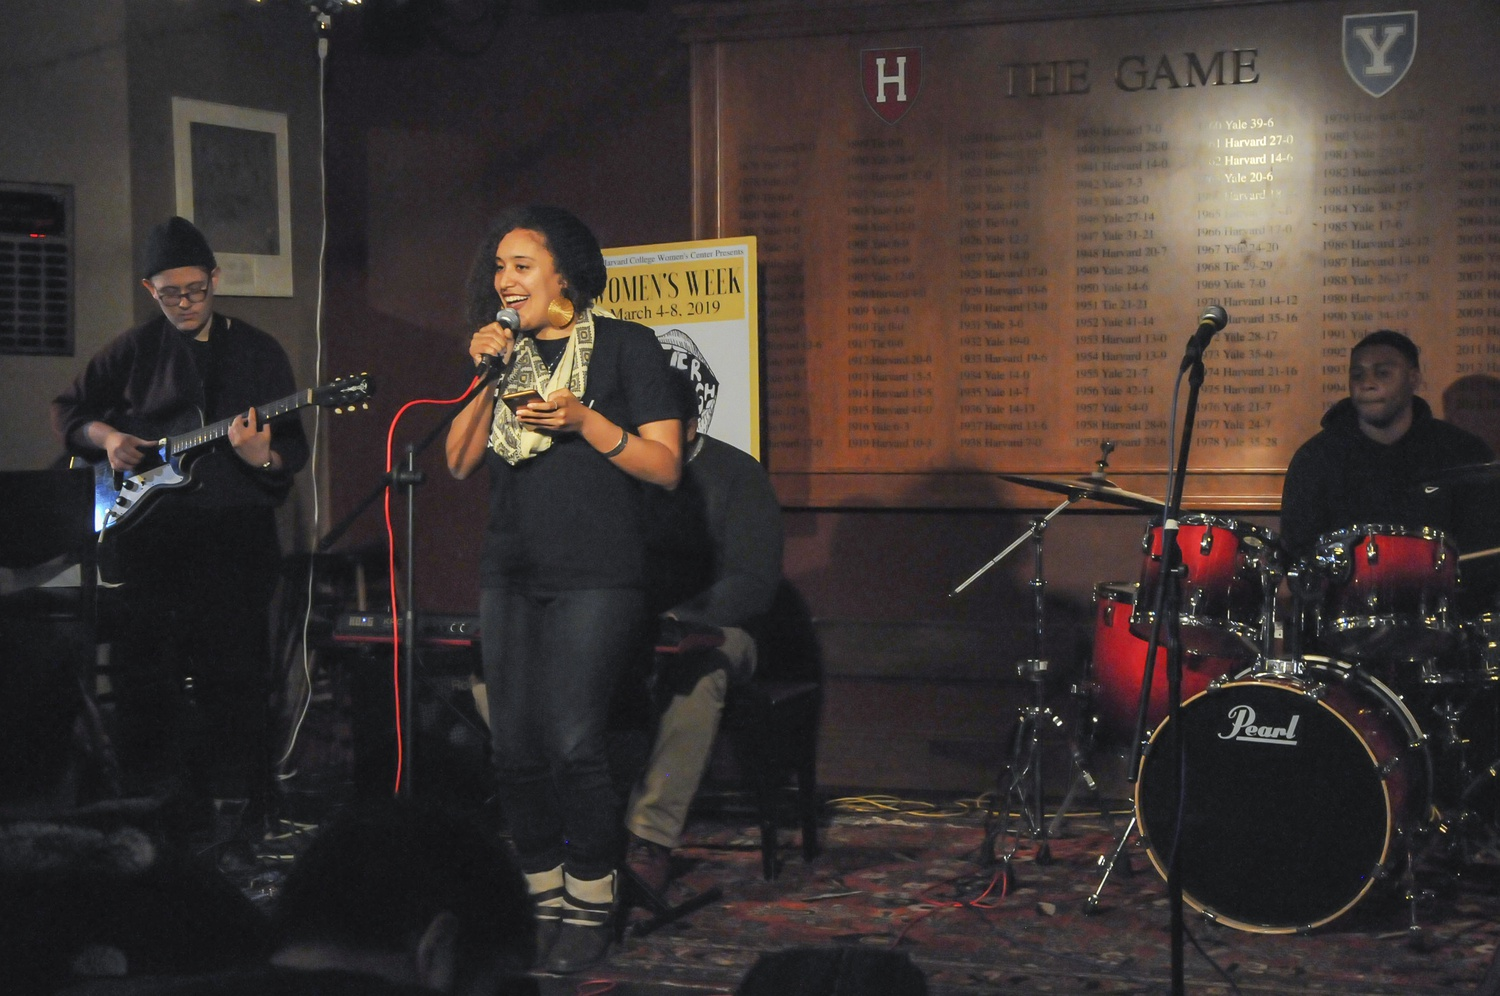 Azmera Hammouri-Davis sings and Alexa K. Mayer plays at Sing It, Sister!, a Women's Week open mic event in the Cambridge Queen's Head pub Wednesday night.